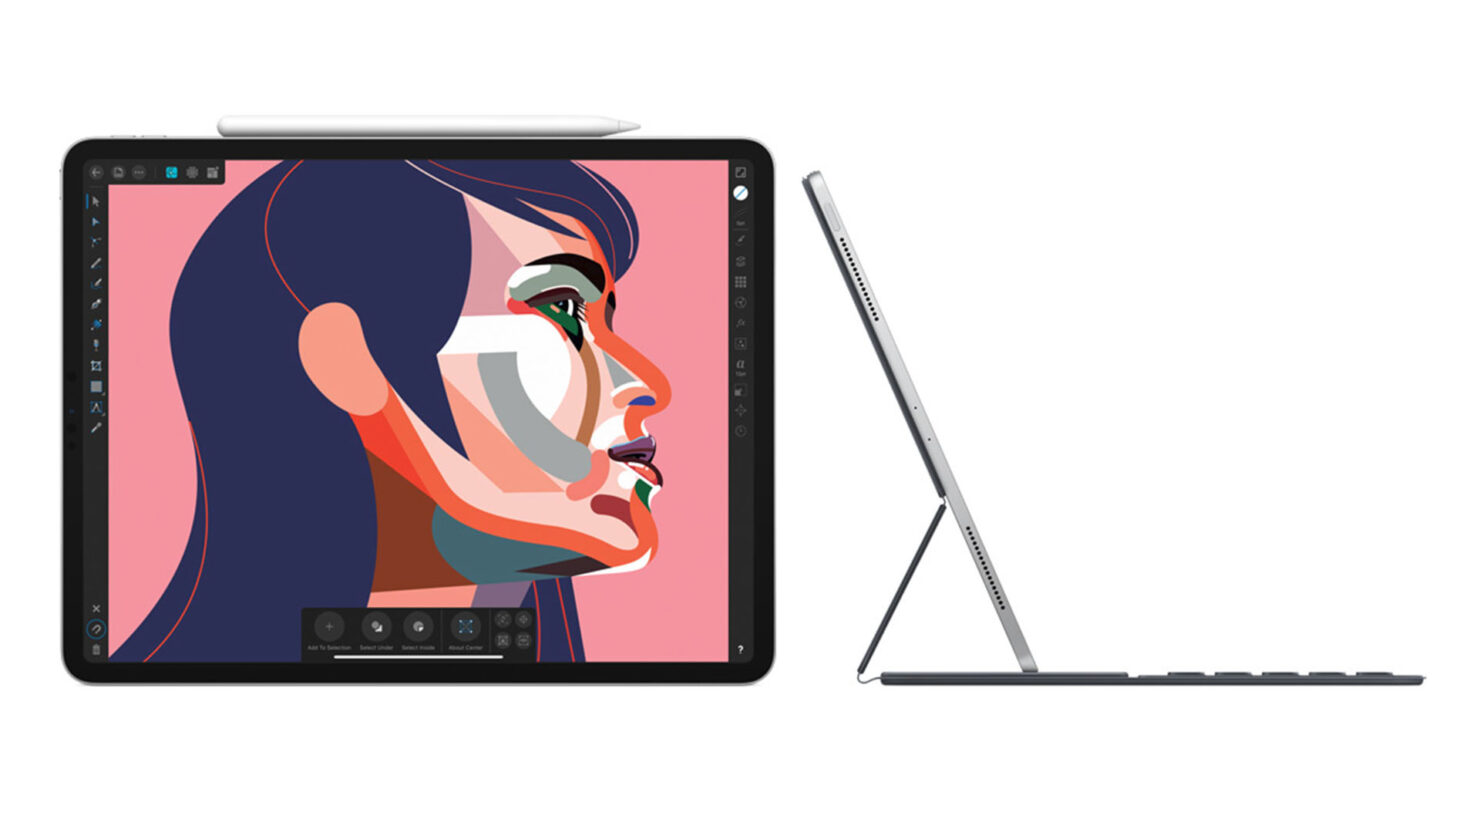 Foldable iPad Specs Shared by Tipster Include 3nm A-Series Chip, microLED Screen, 2023 Release